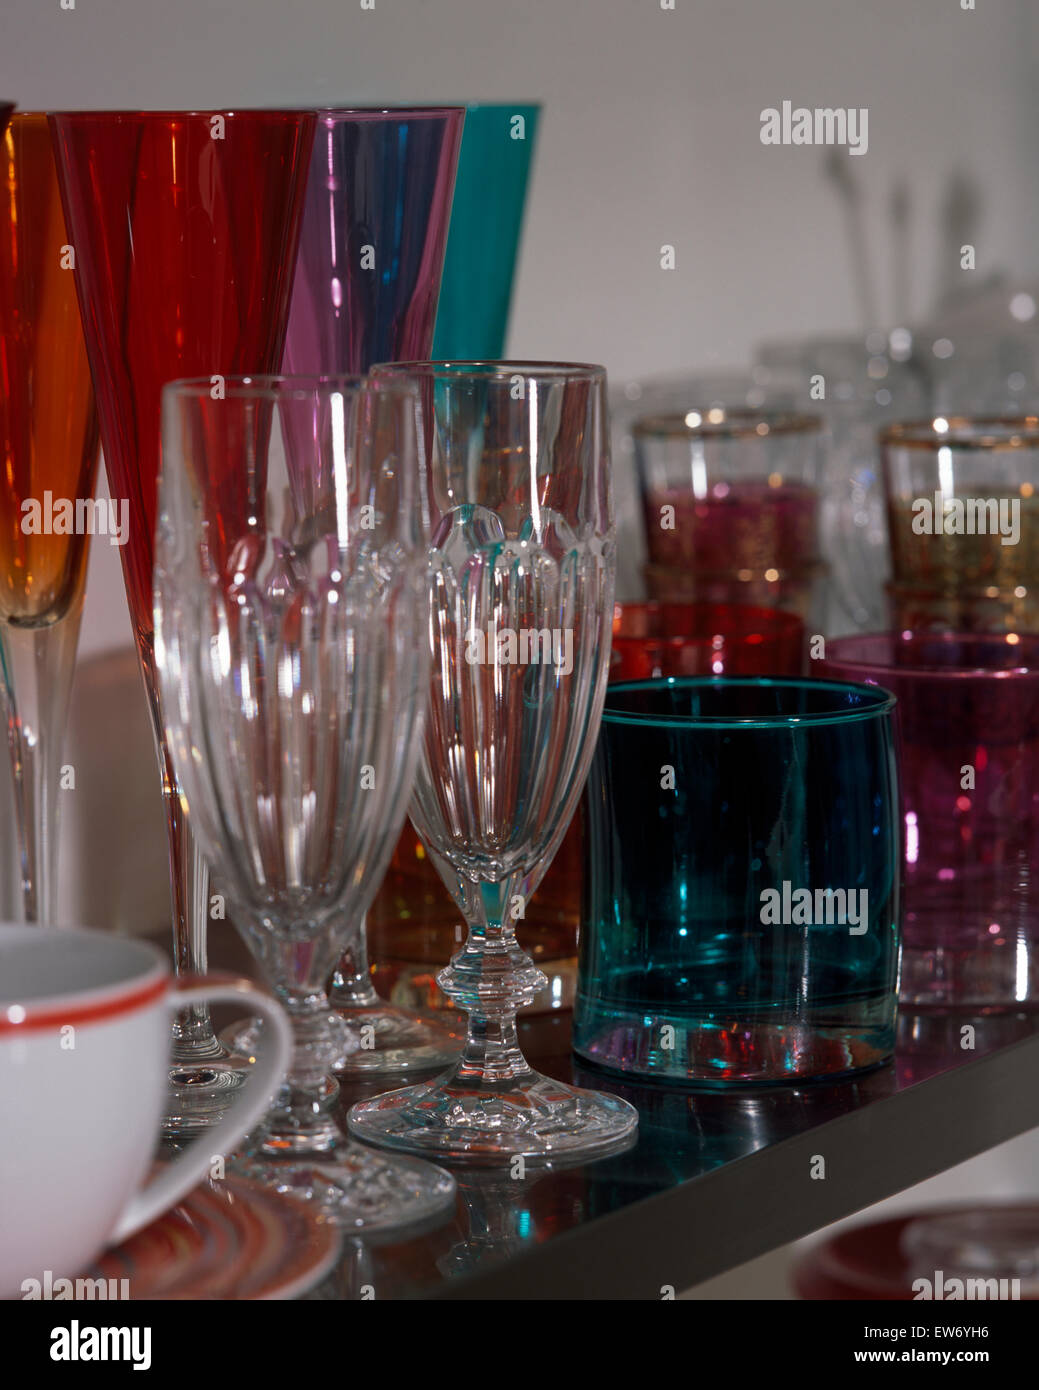 Close-up of a collection of clear and colored glassware - Stock Image